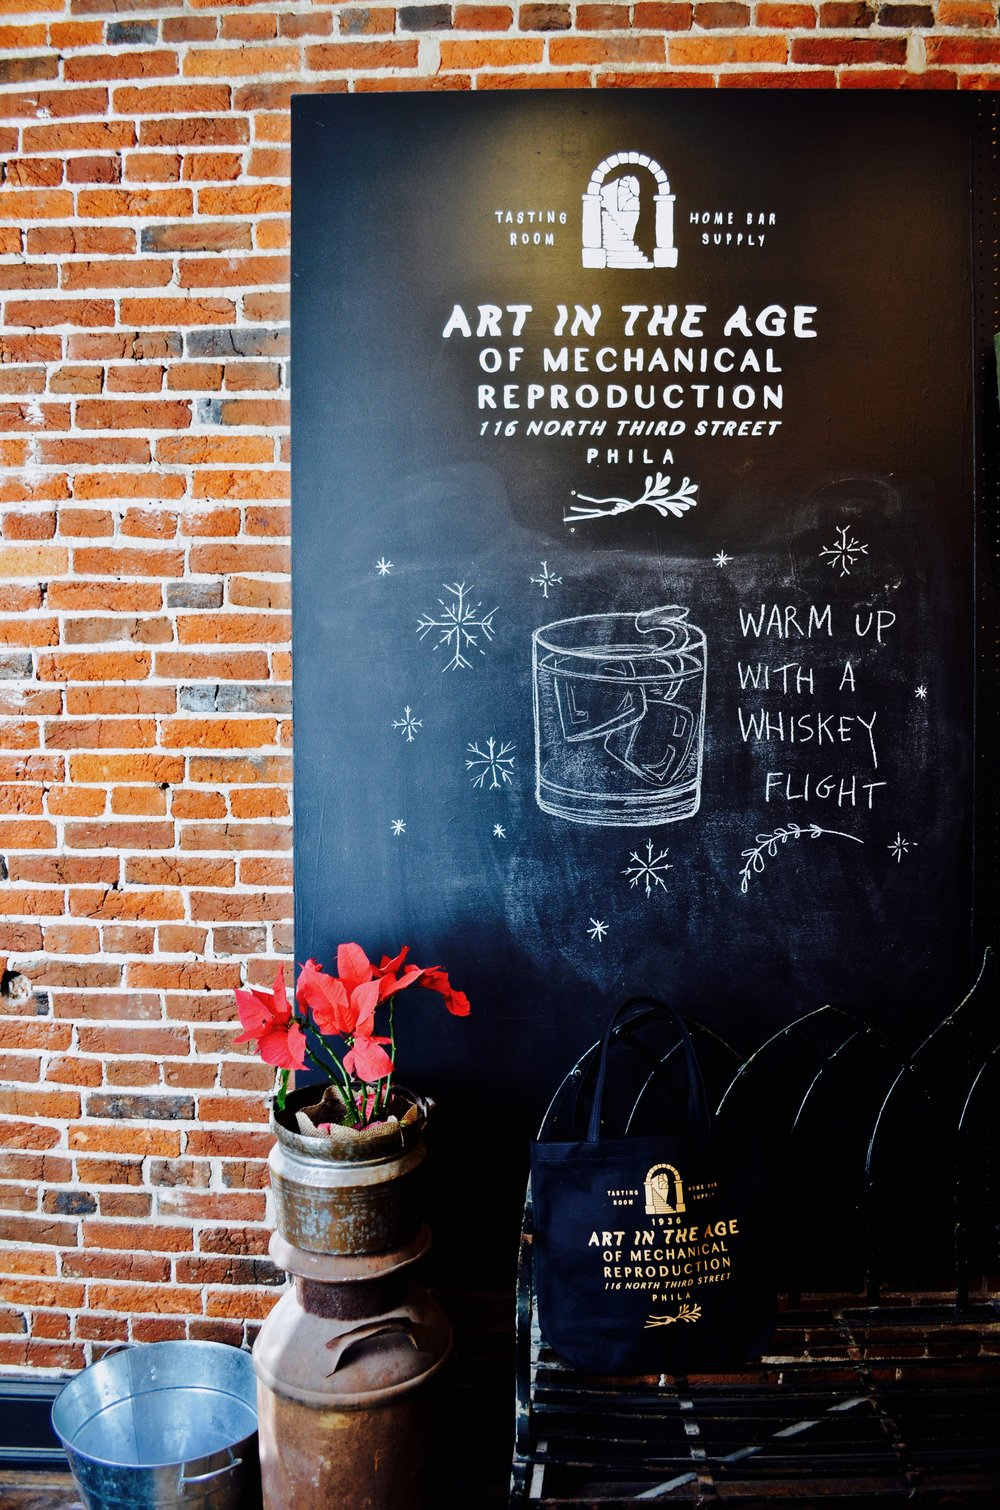 Art in the Age